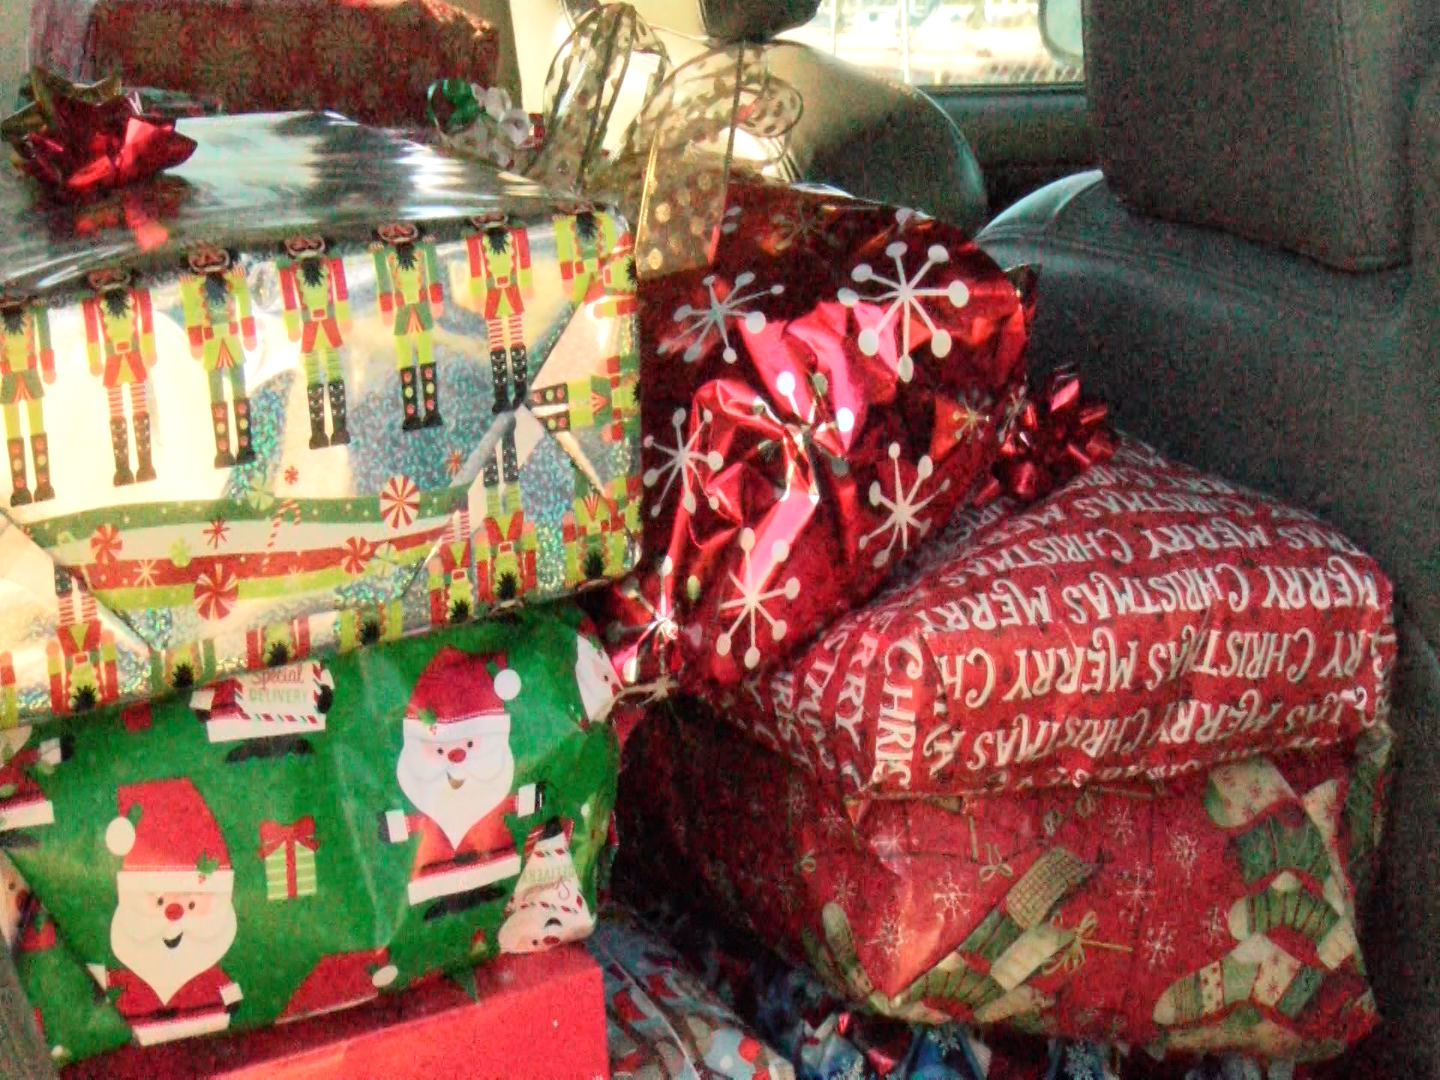 St. Anthony Christmas Drive